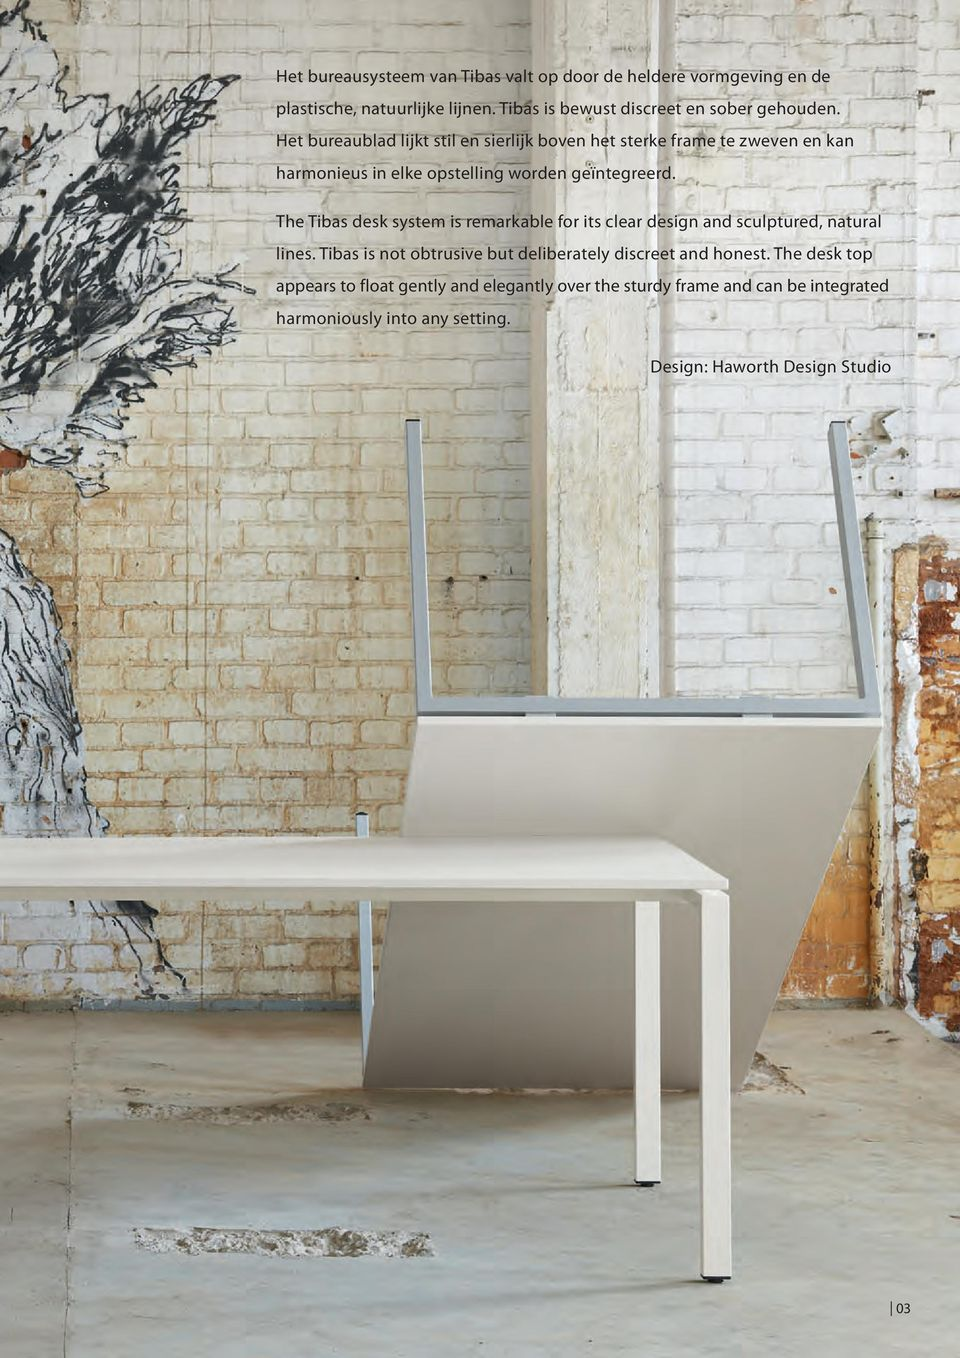 The Tibas desk system is remarkable for its clear design and sculptured, natural lines.